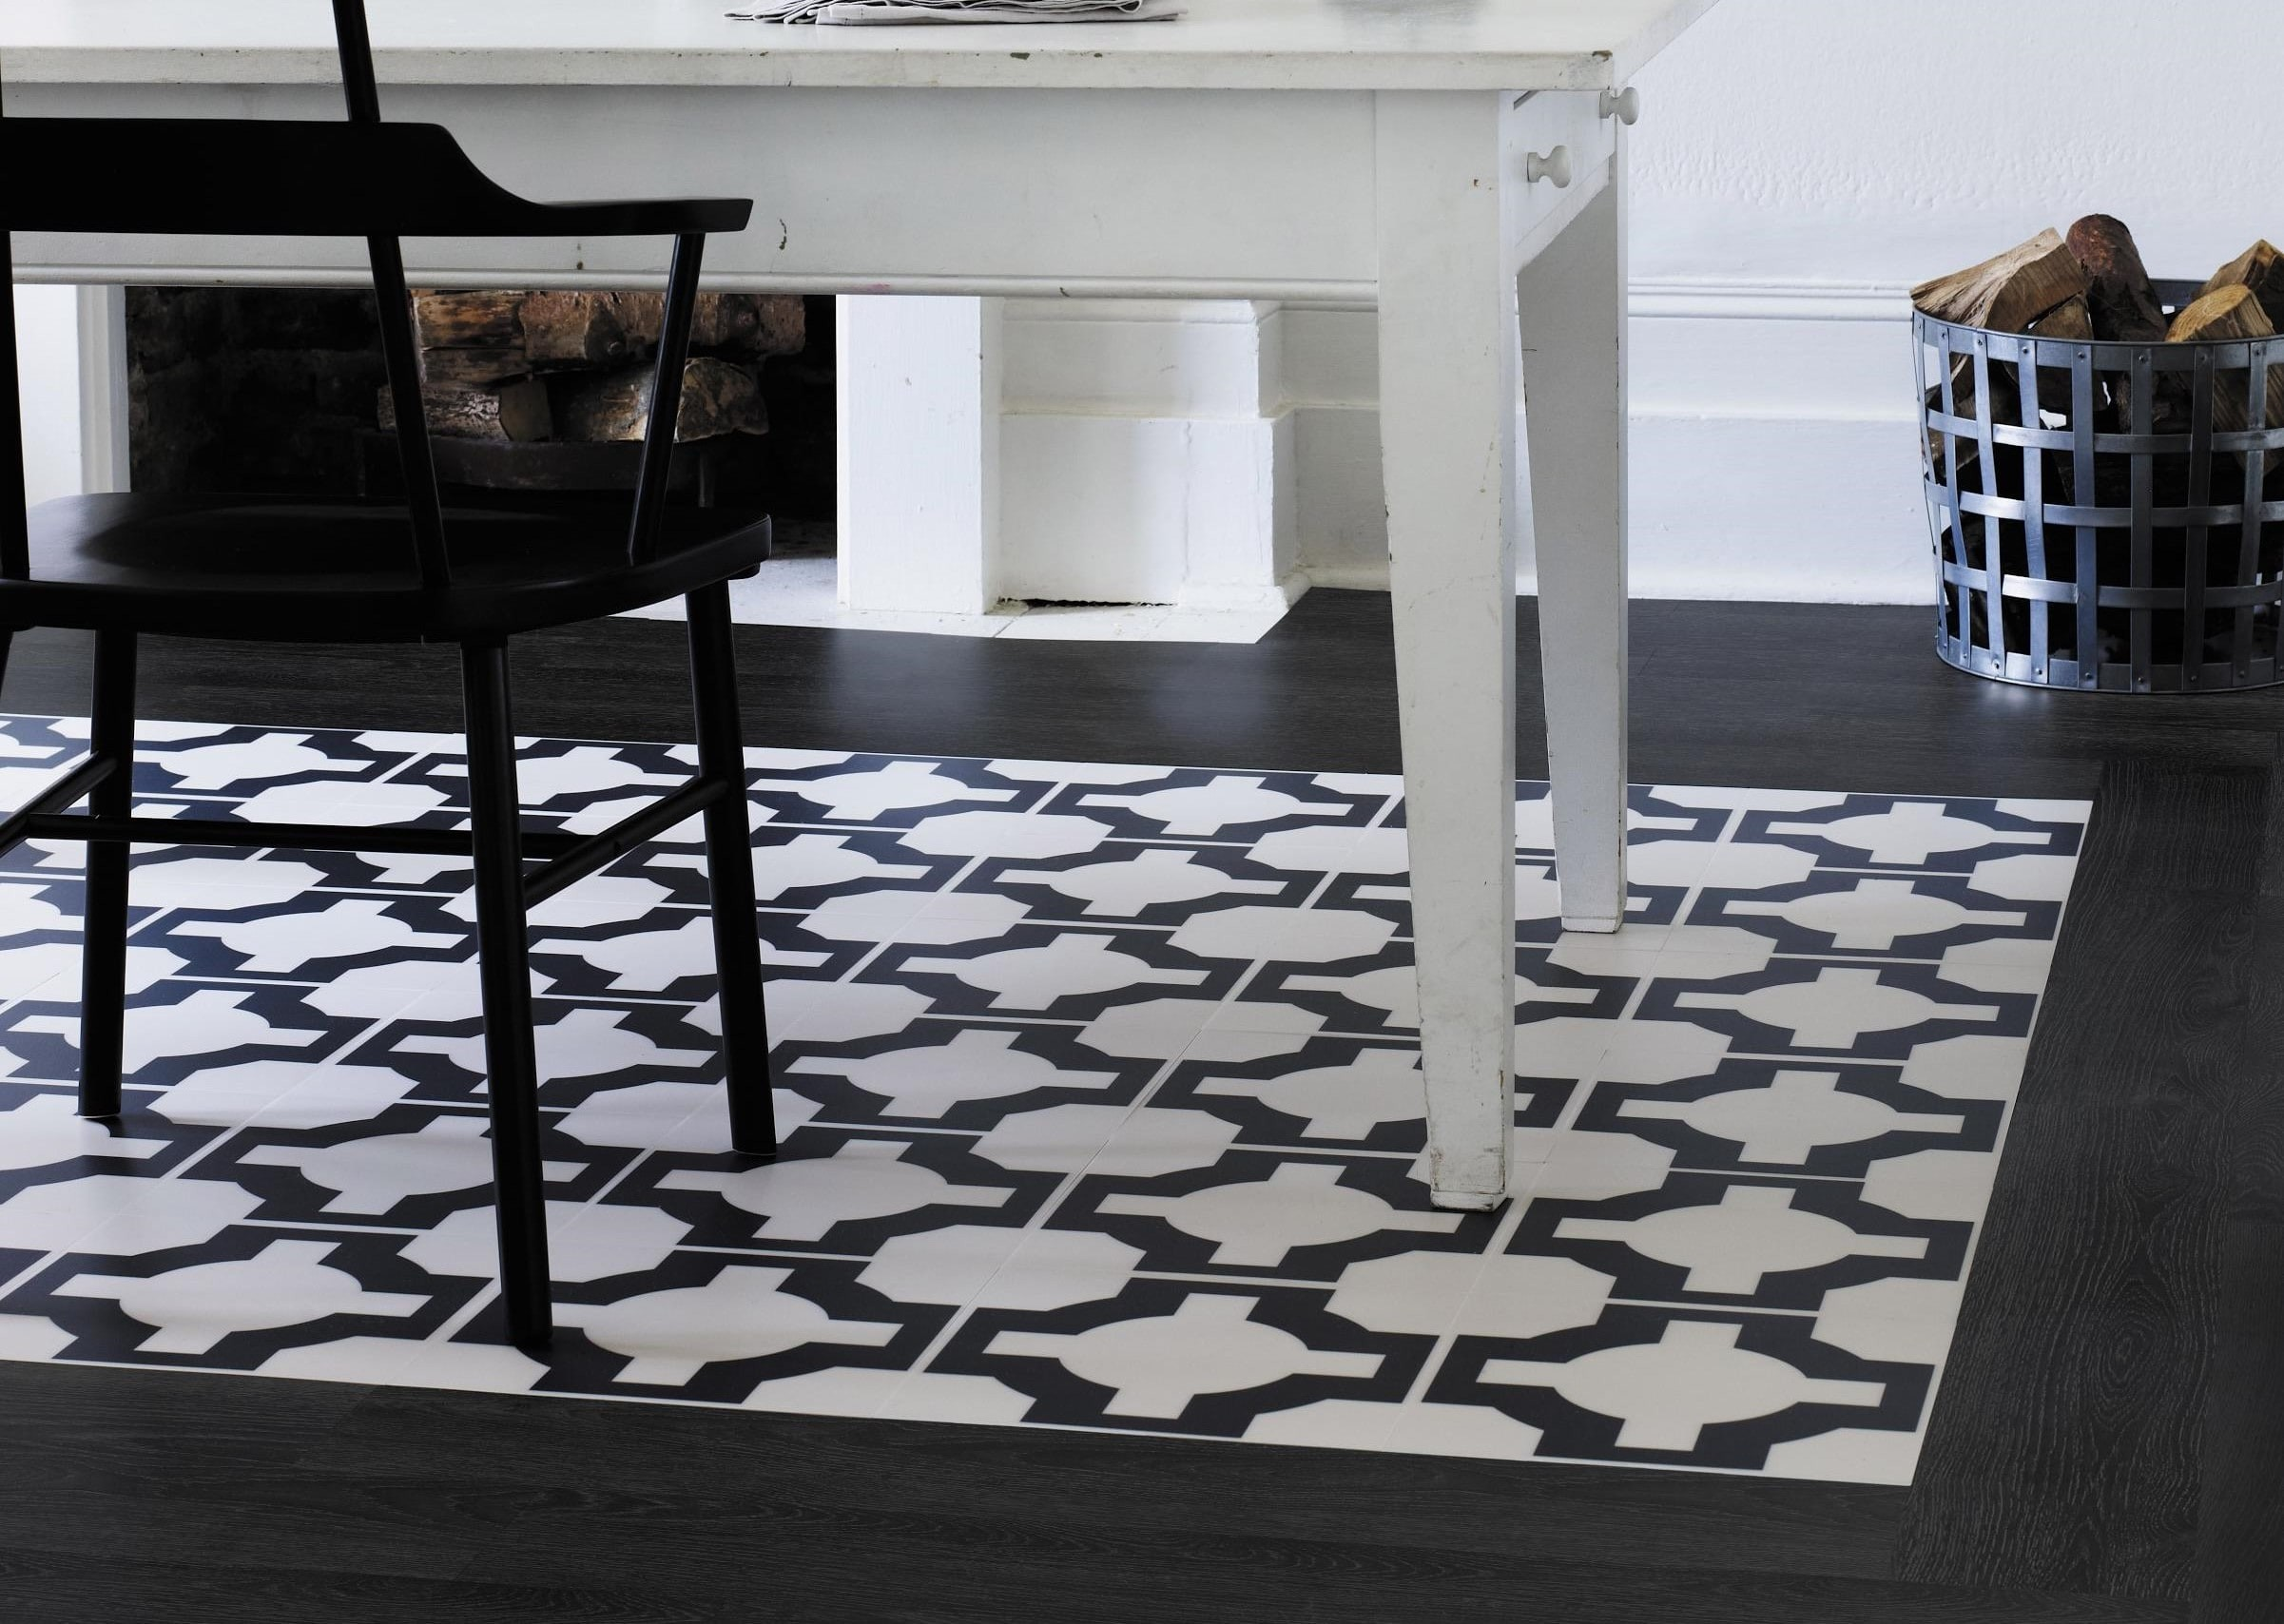 Stunning Luxury Vinyl Flooring Tiles Suitable For Any Room In The Home Including From Some Of Britain S Best Loved Designers